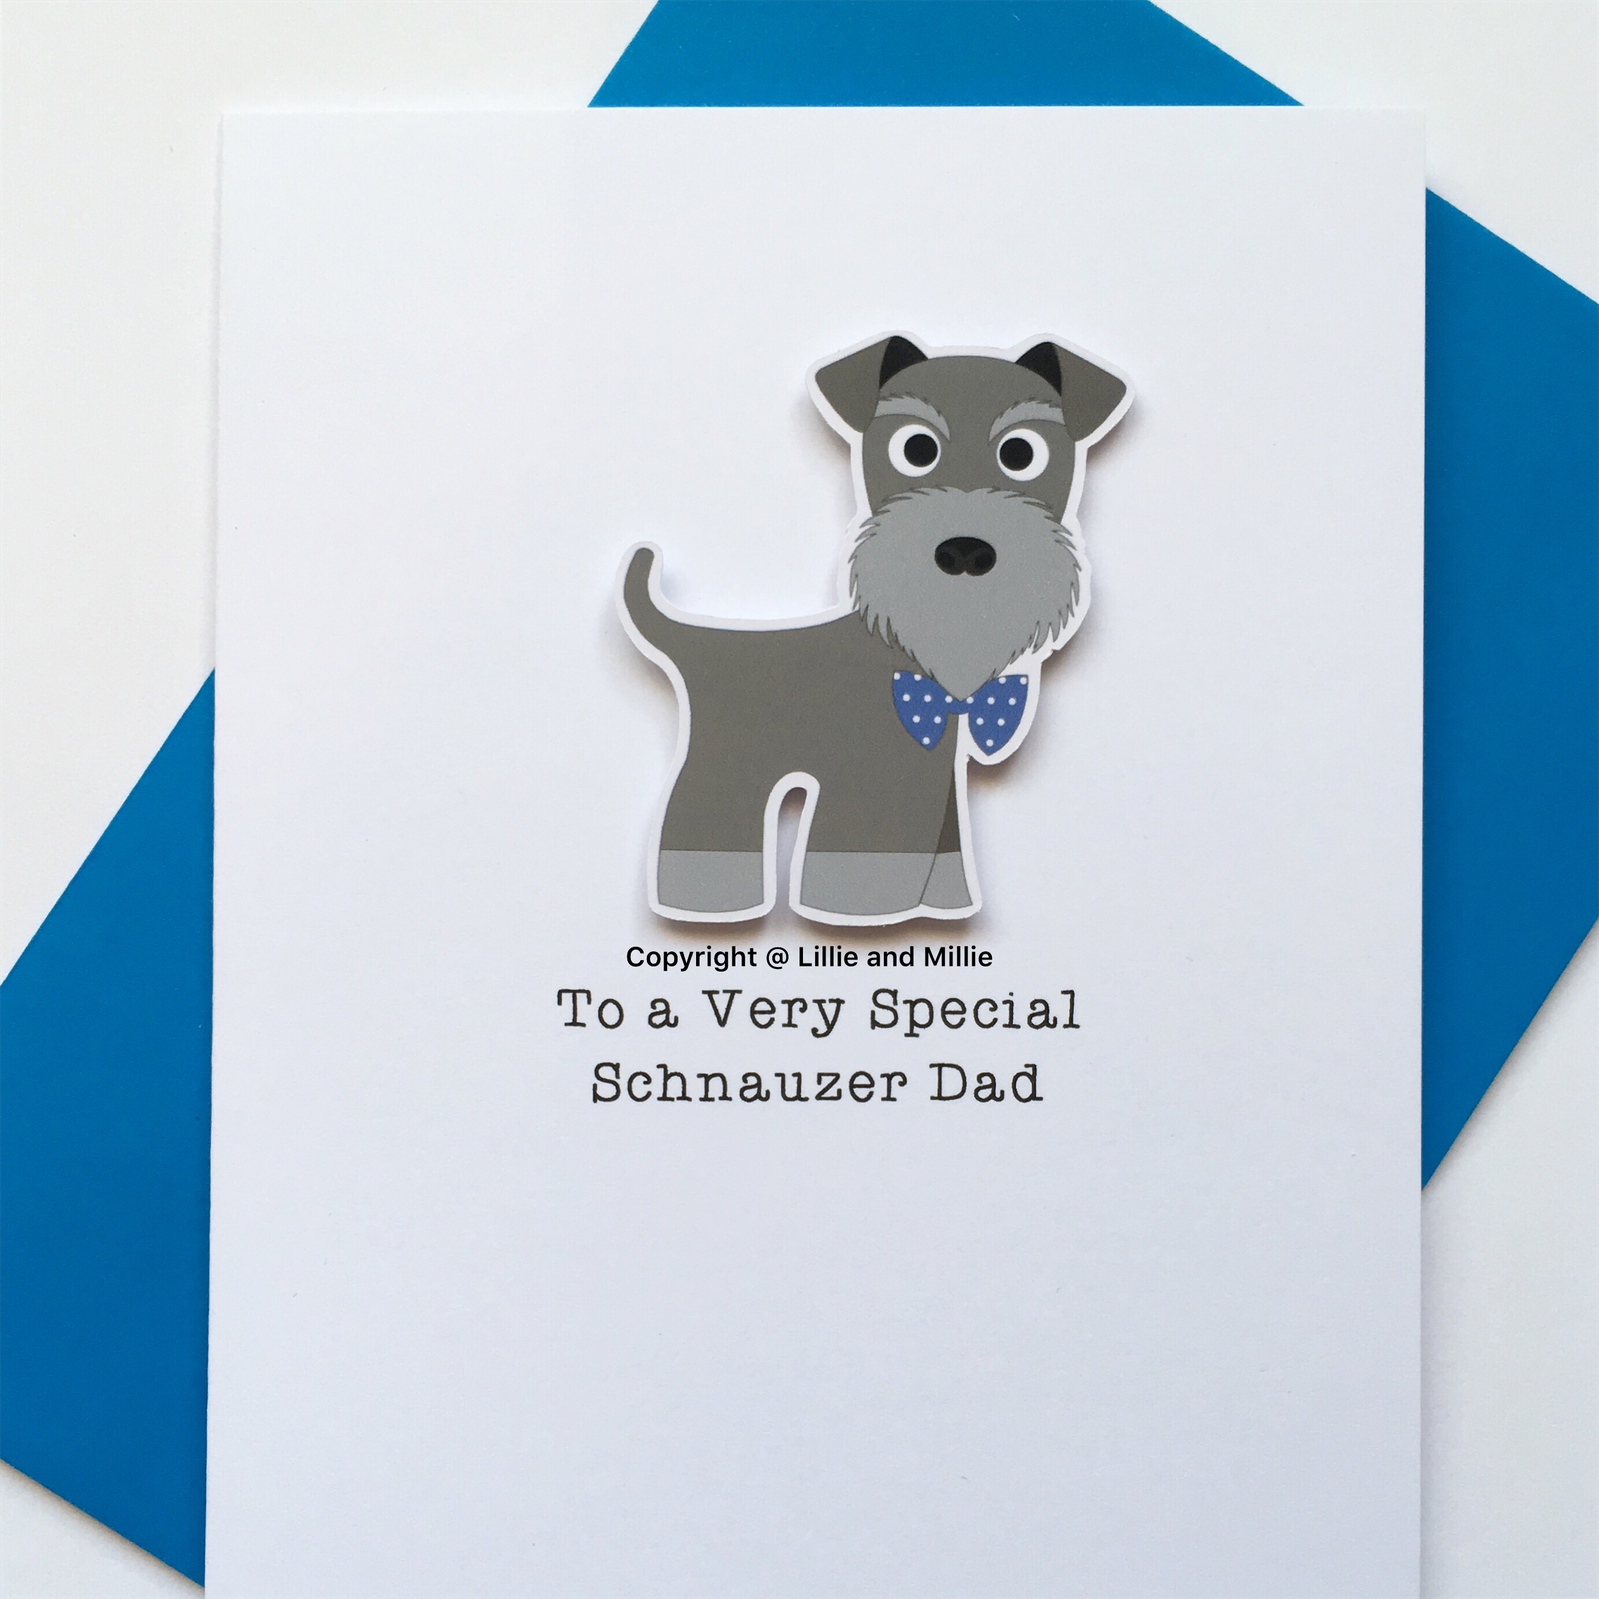 Cute and Cuddly To a Very Special Schnauzer Dad Card